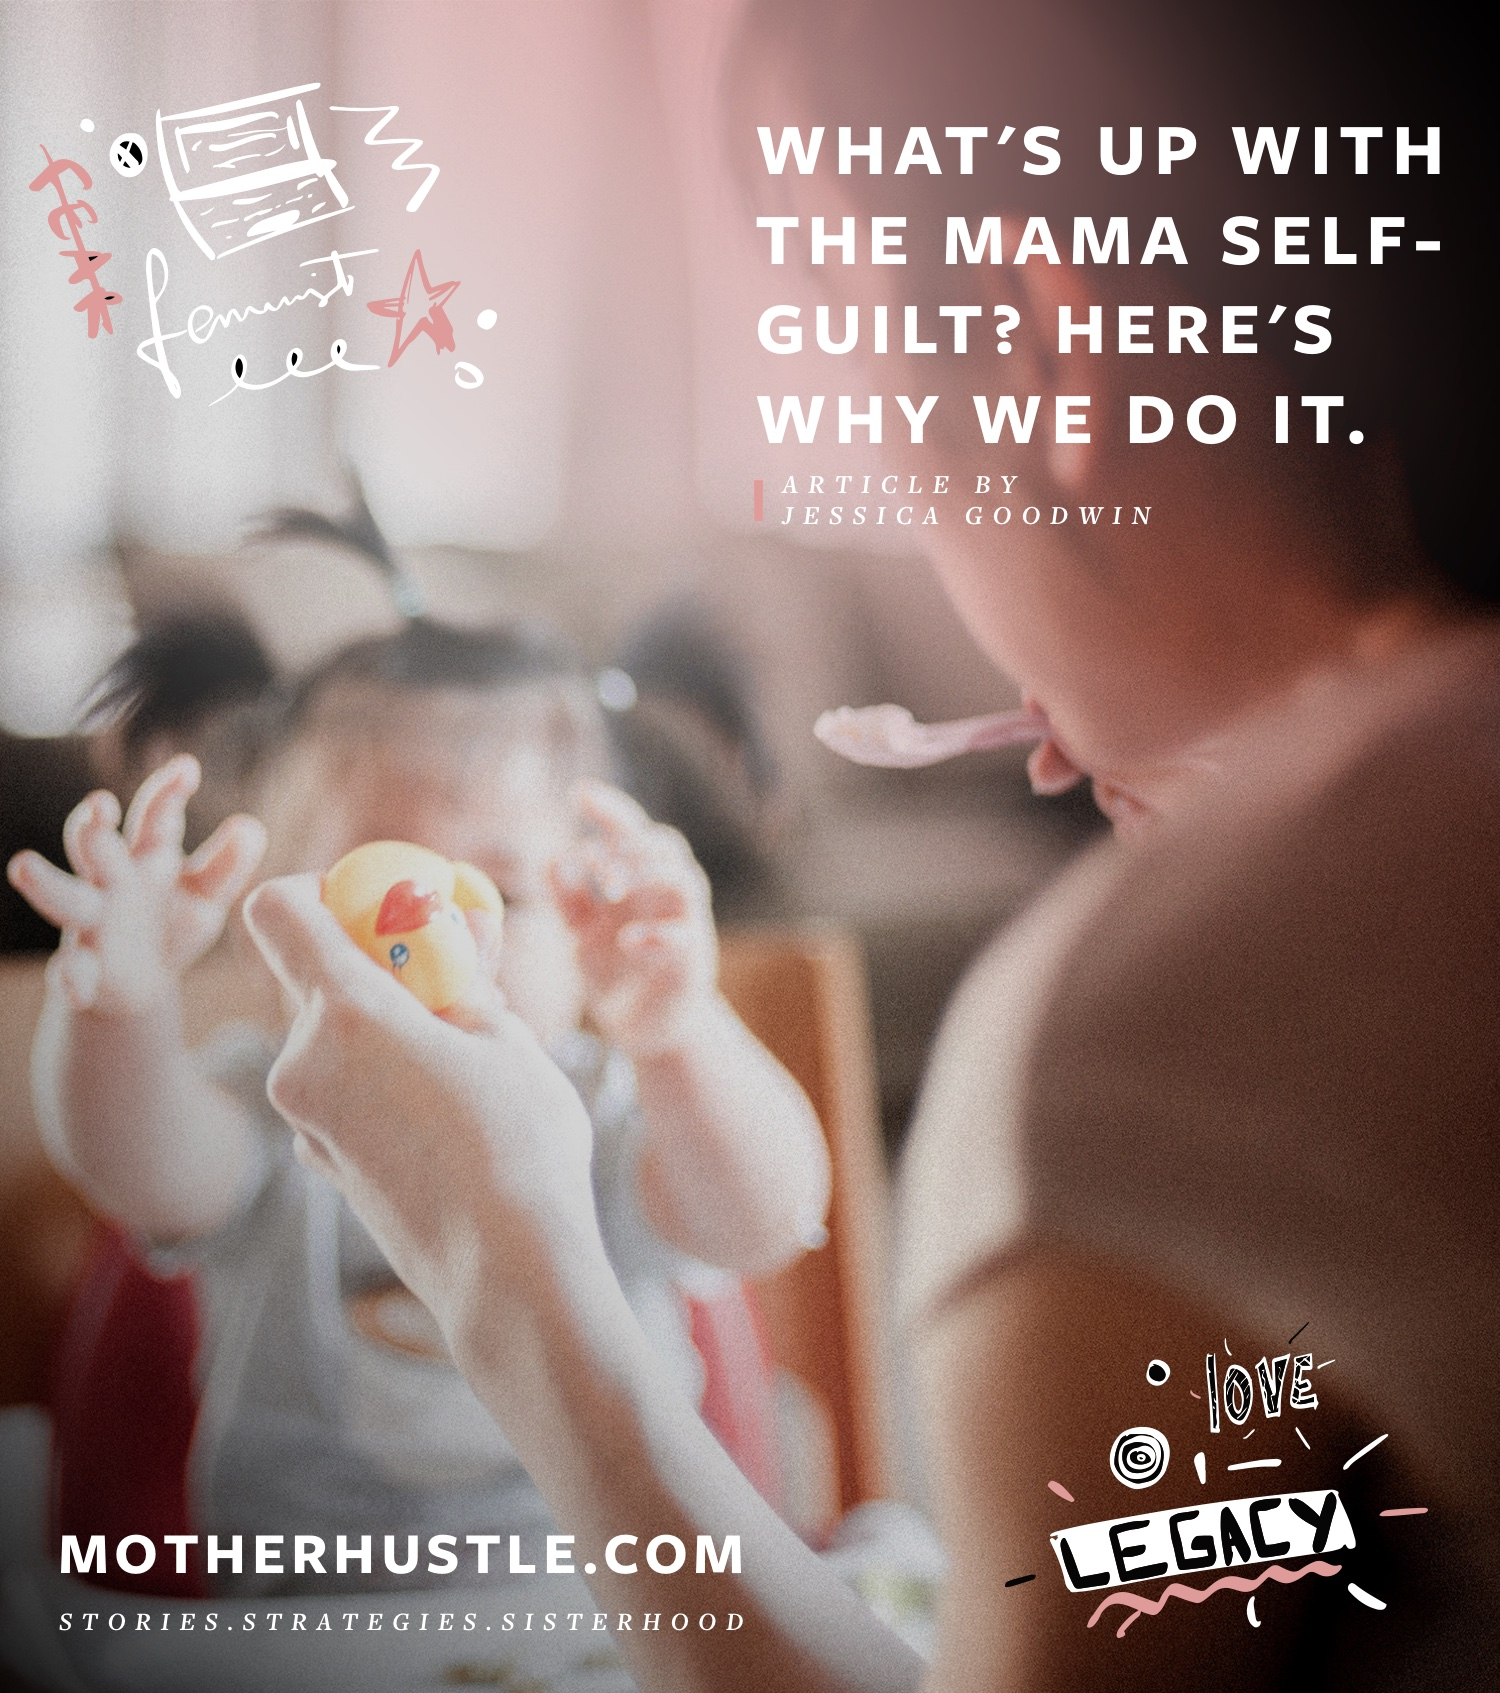 What's Up With The Mama Self-Guilt? Here's Why We Do It.